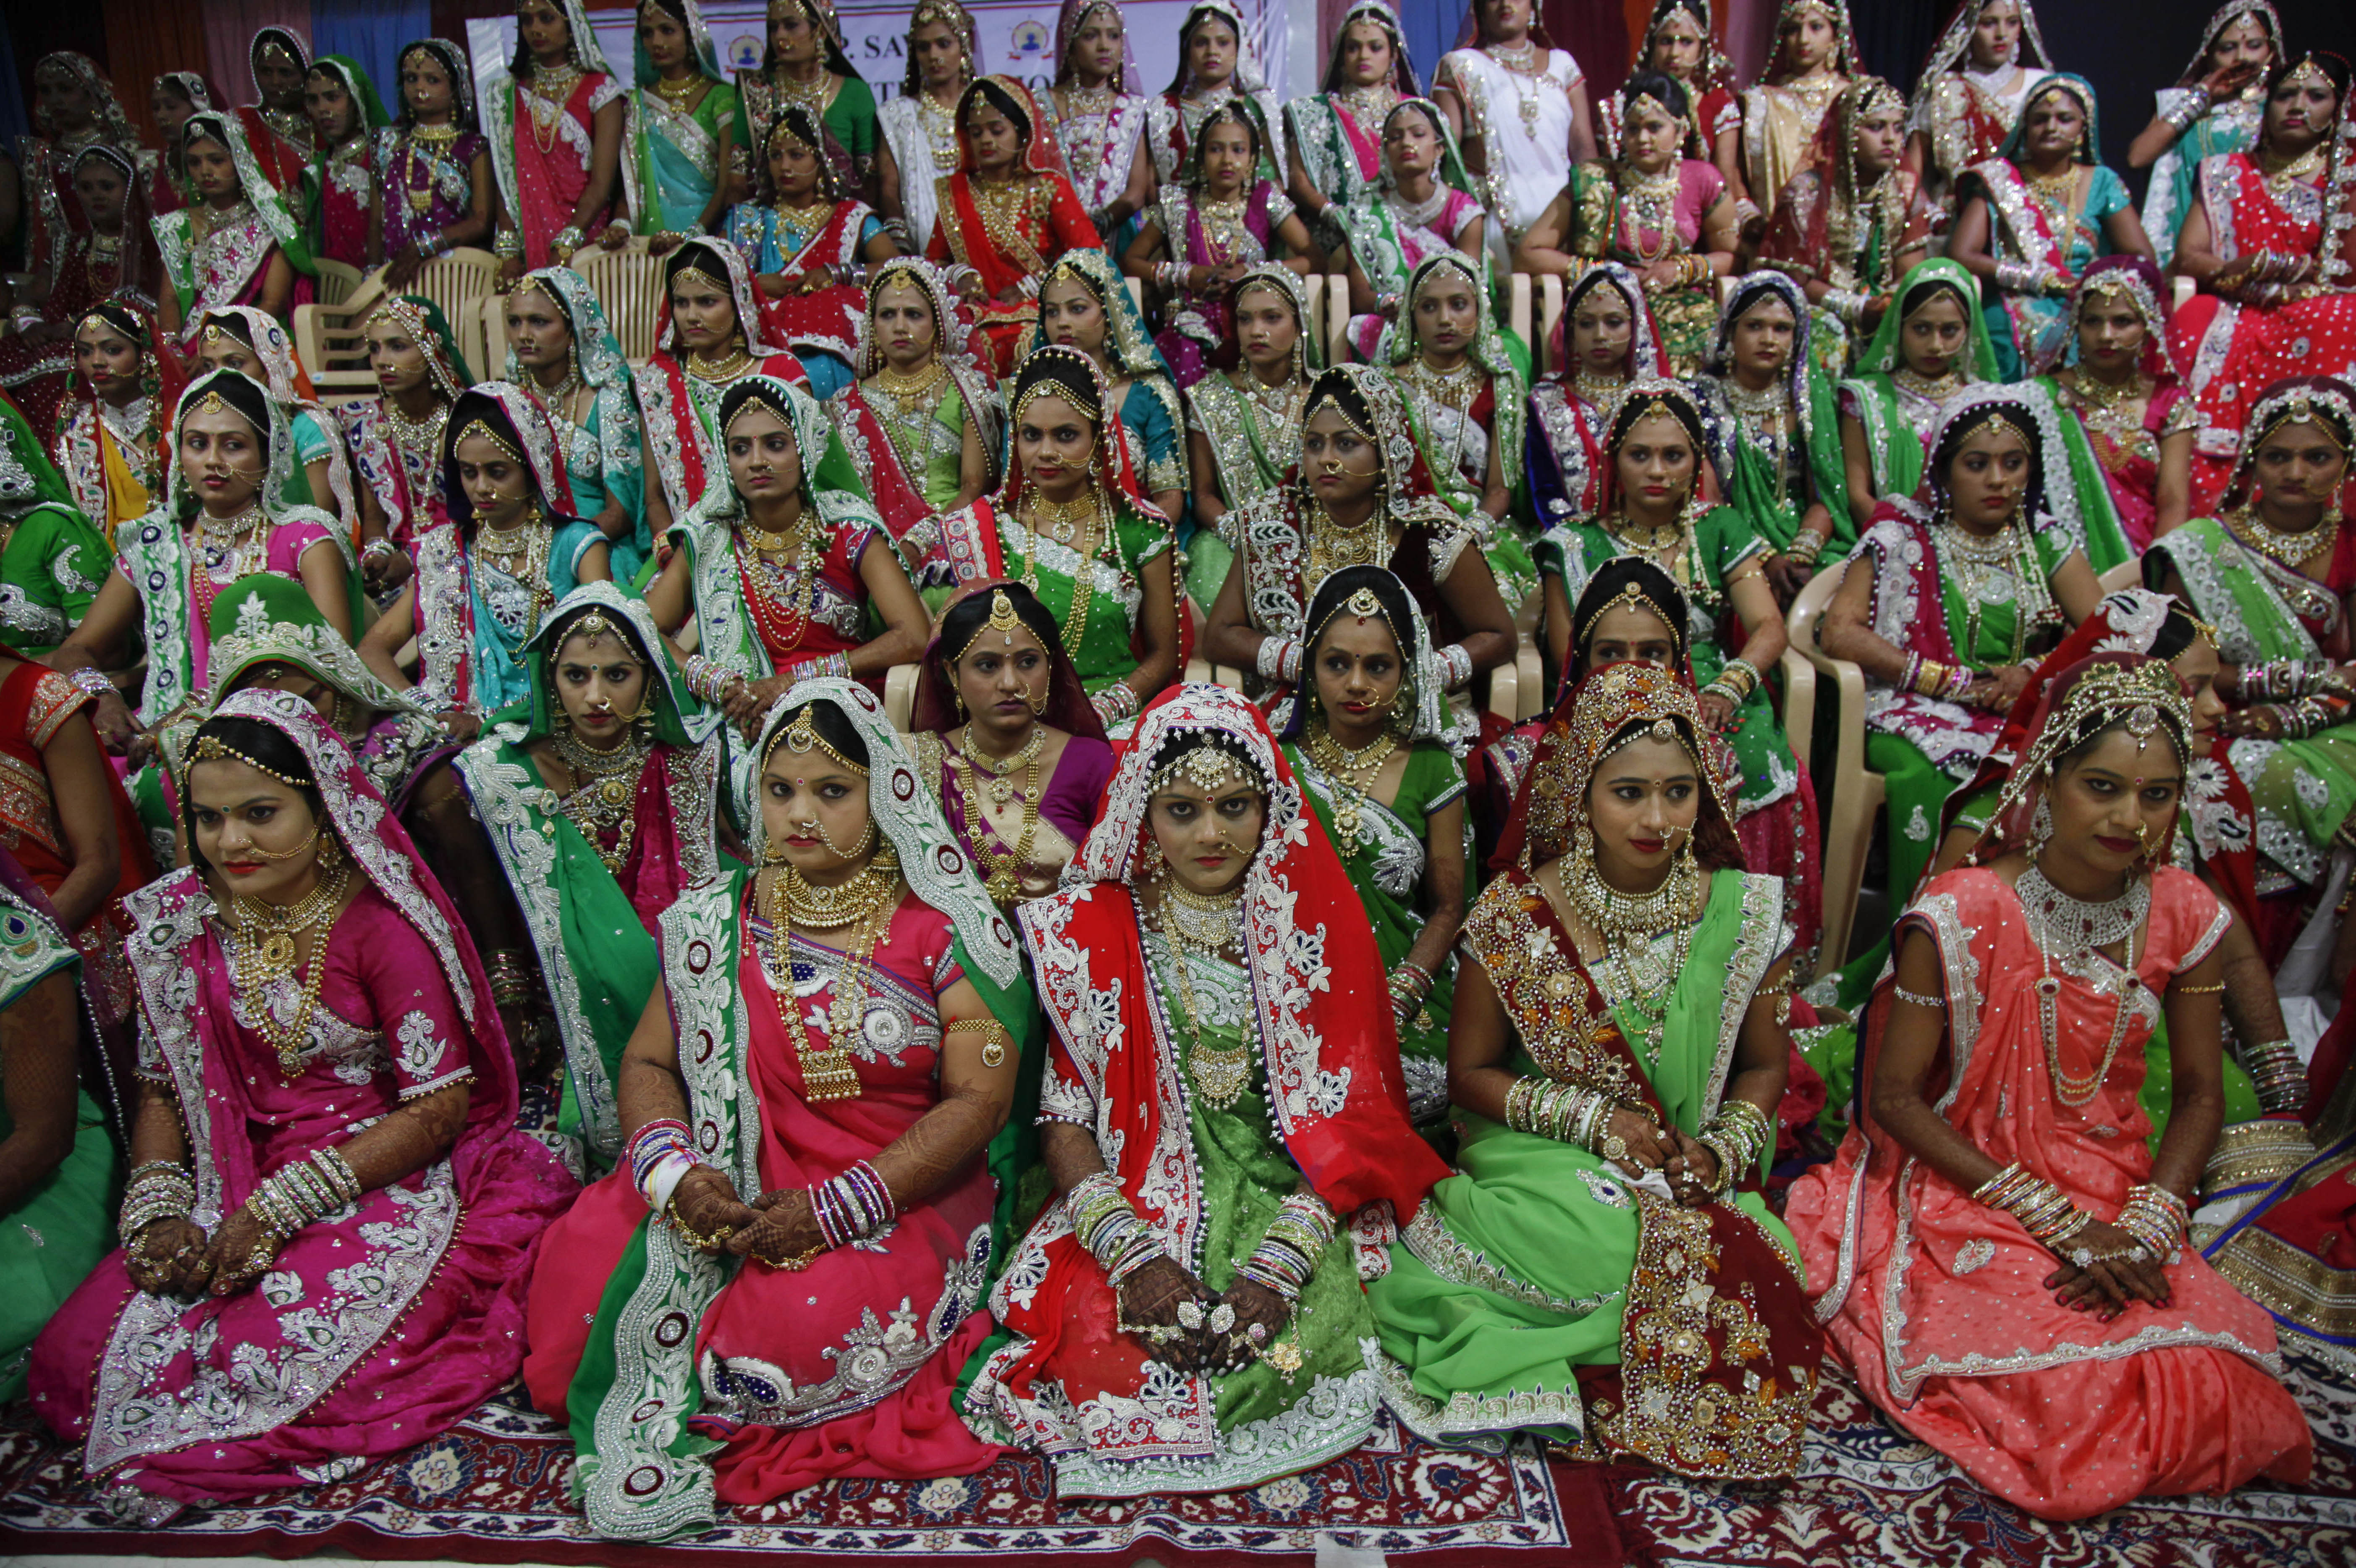 Indian brides sit for a group photo before a mass wedding hosted by a diamond trader in Surat, India, Sunday, Dec. 6, 2015. Photo: AP